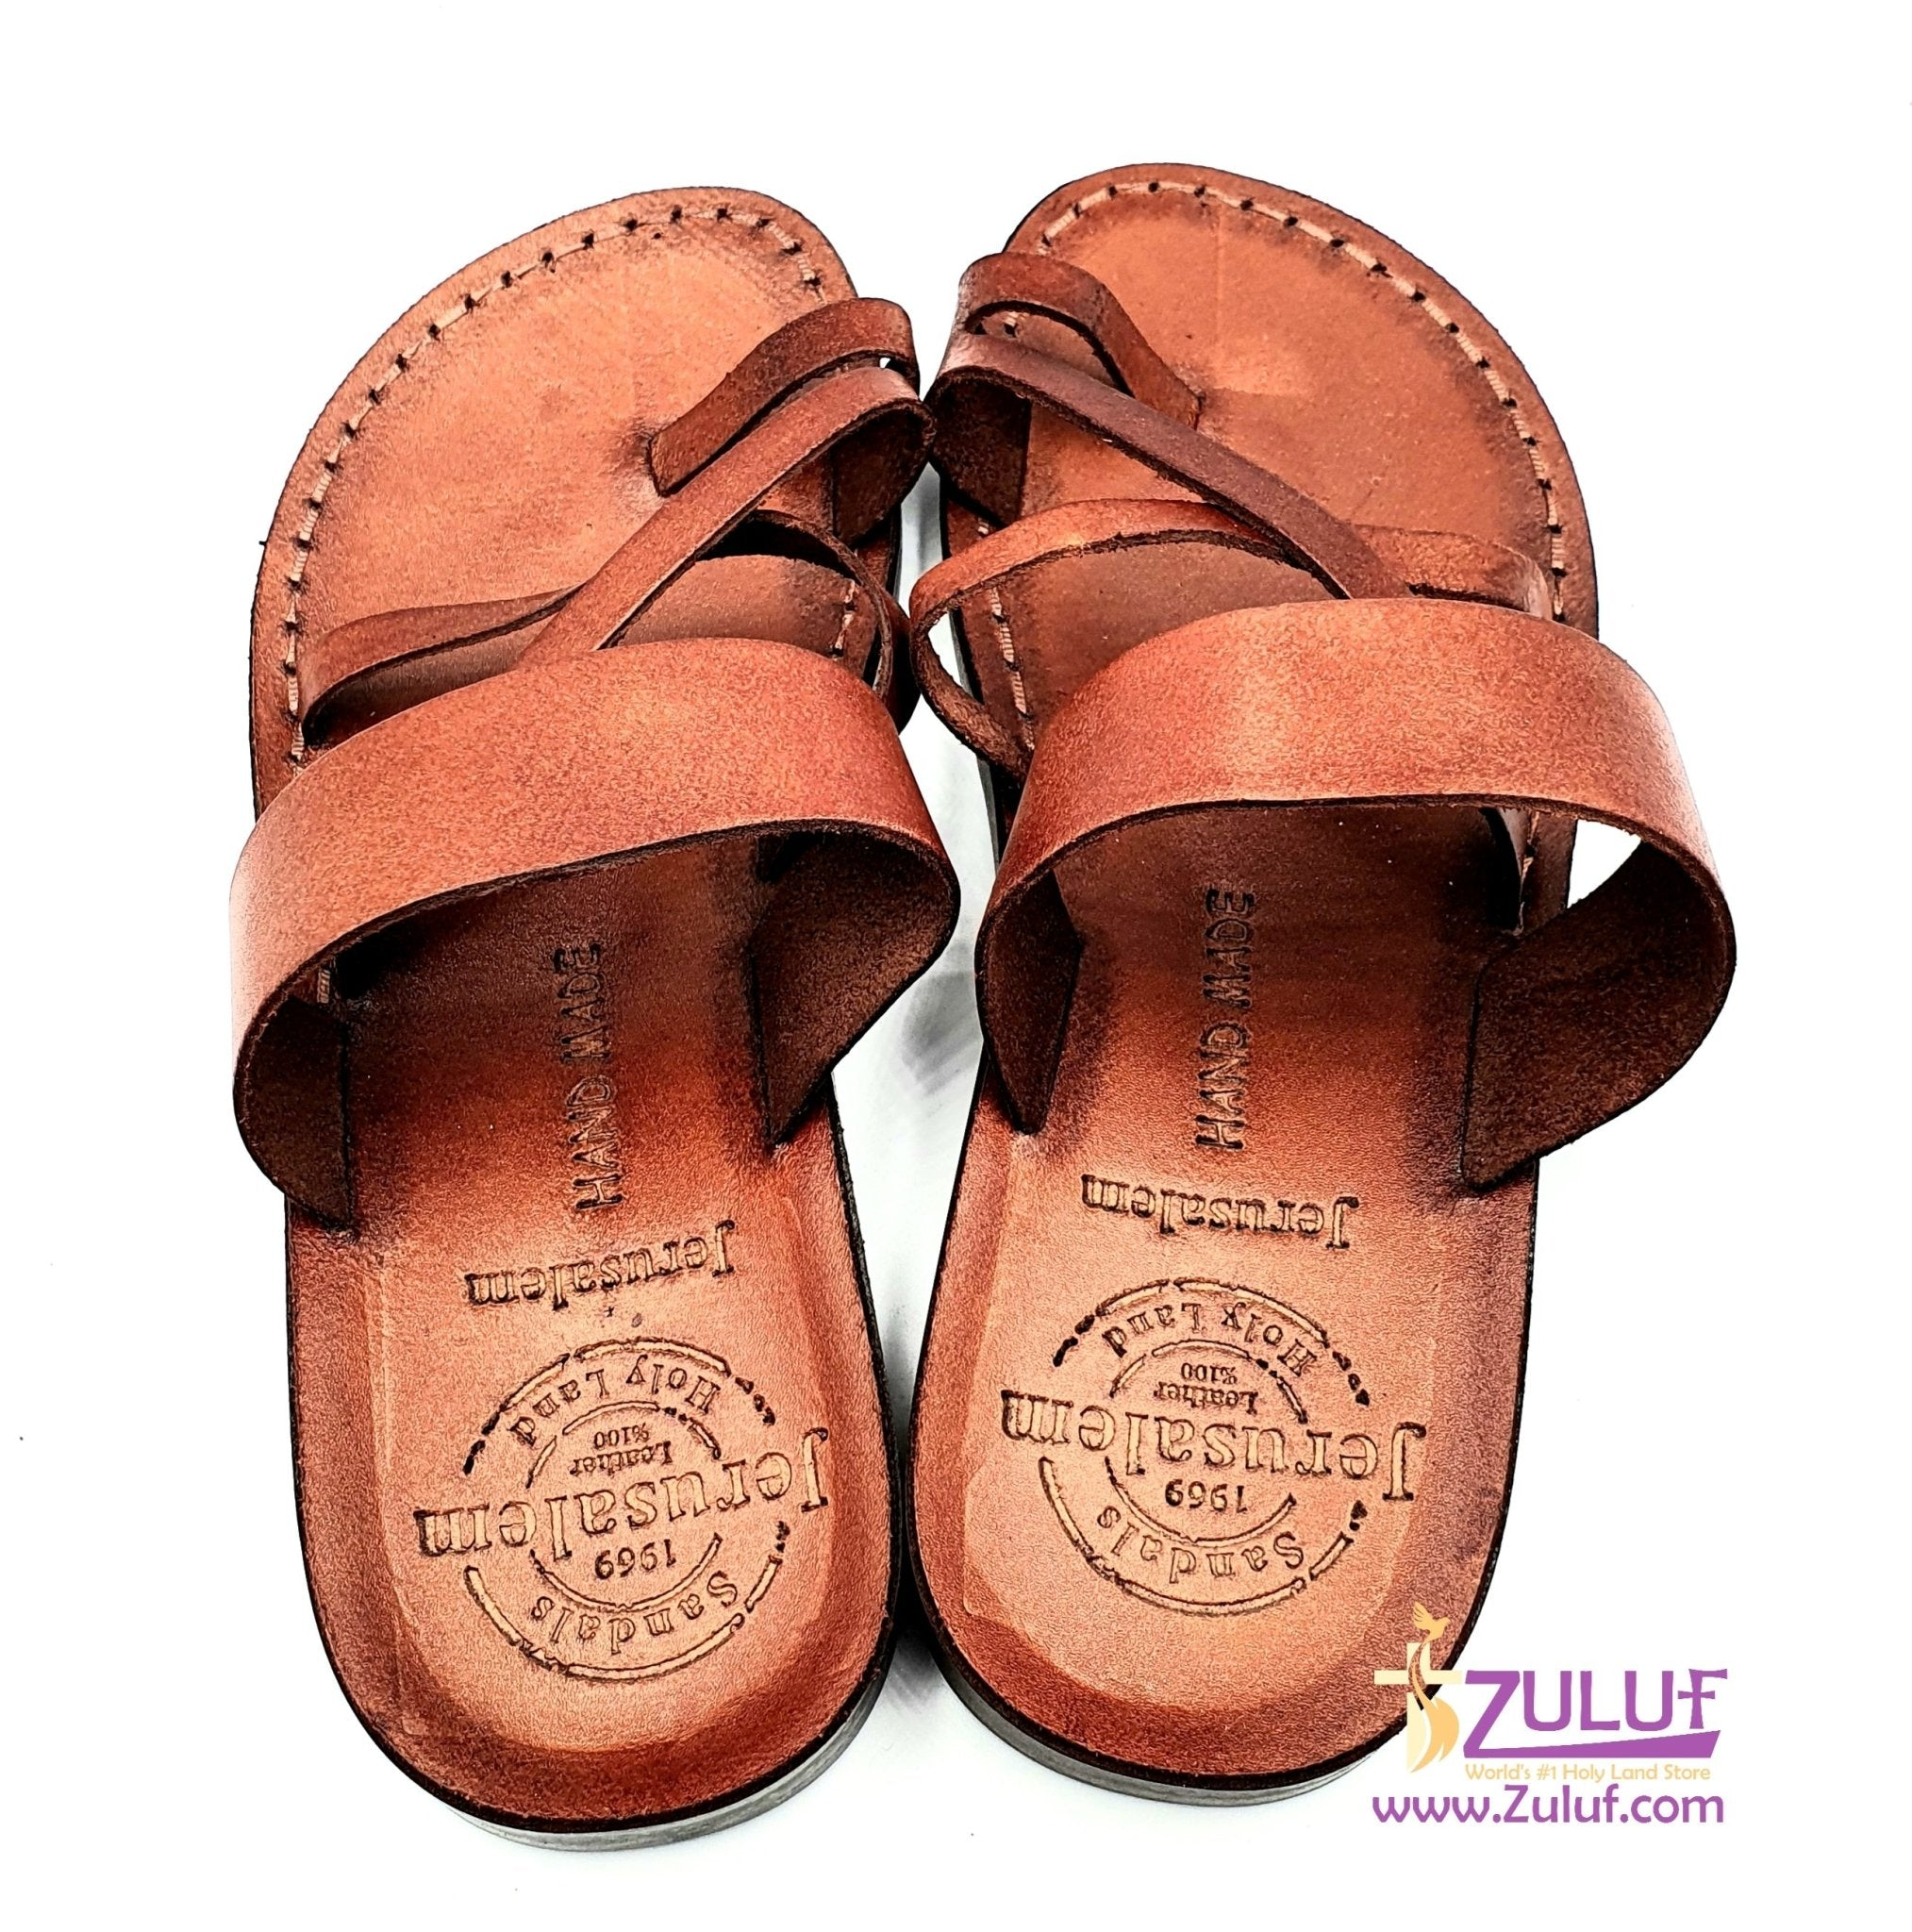 Jerusalem leather hand made unlocked sandal SAN023 - Zuluf